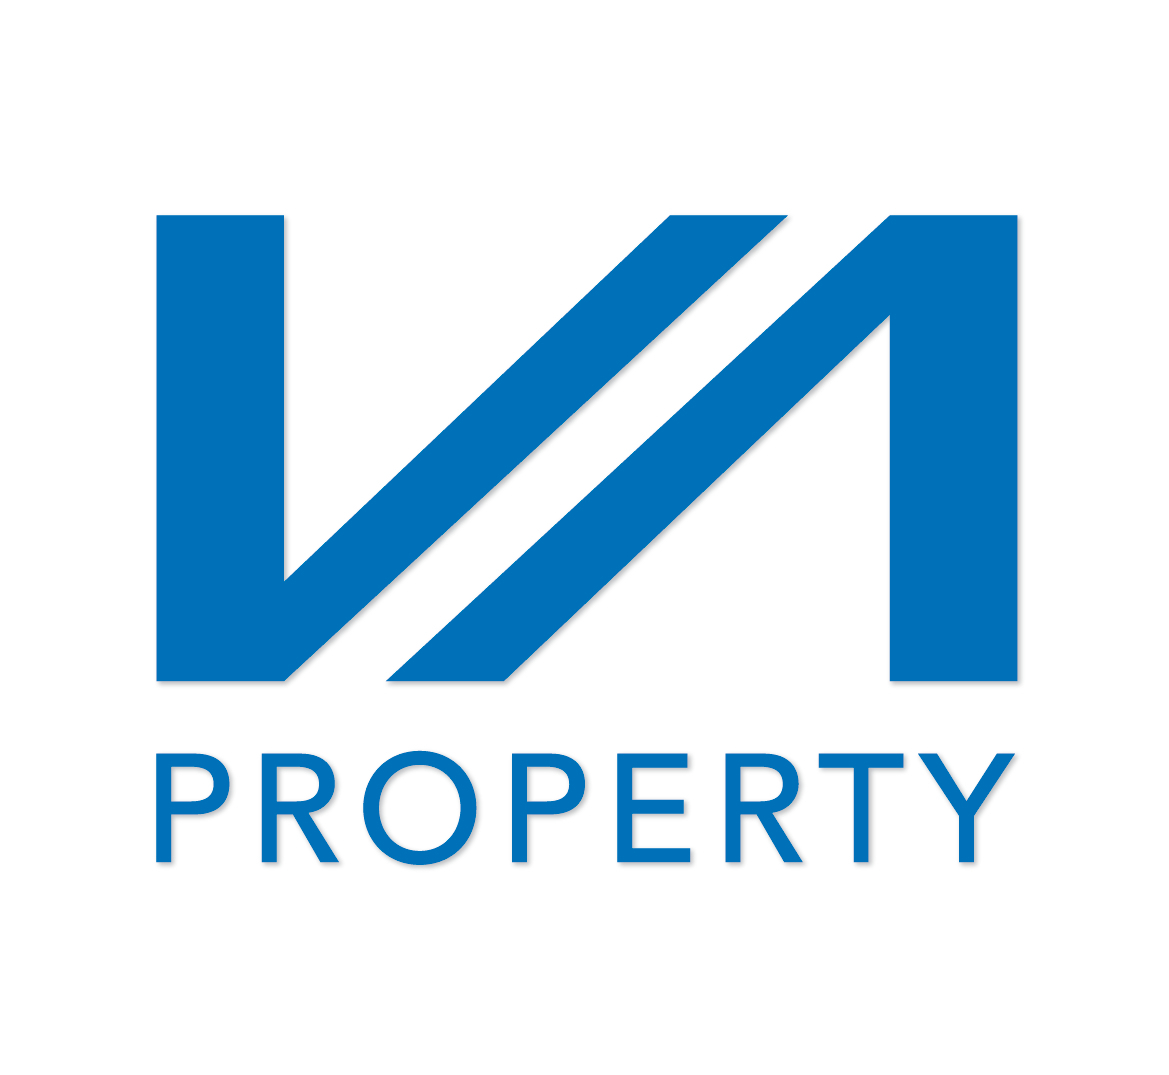 VALUE ADDED PROPERTY logo